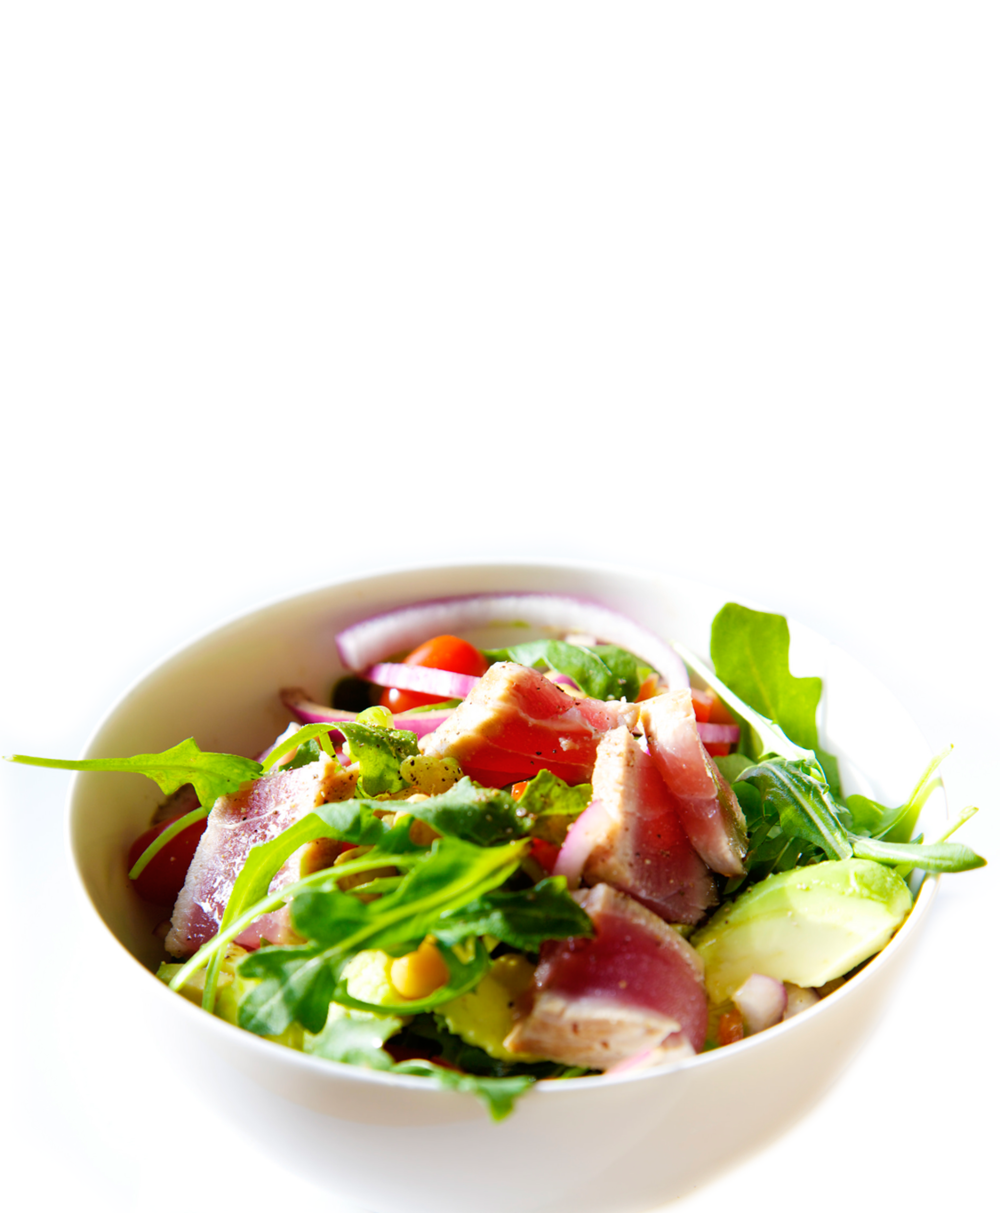 Garden Fresh Salad with Seared Tuna letsregale.com